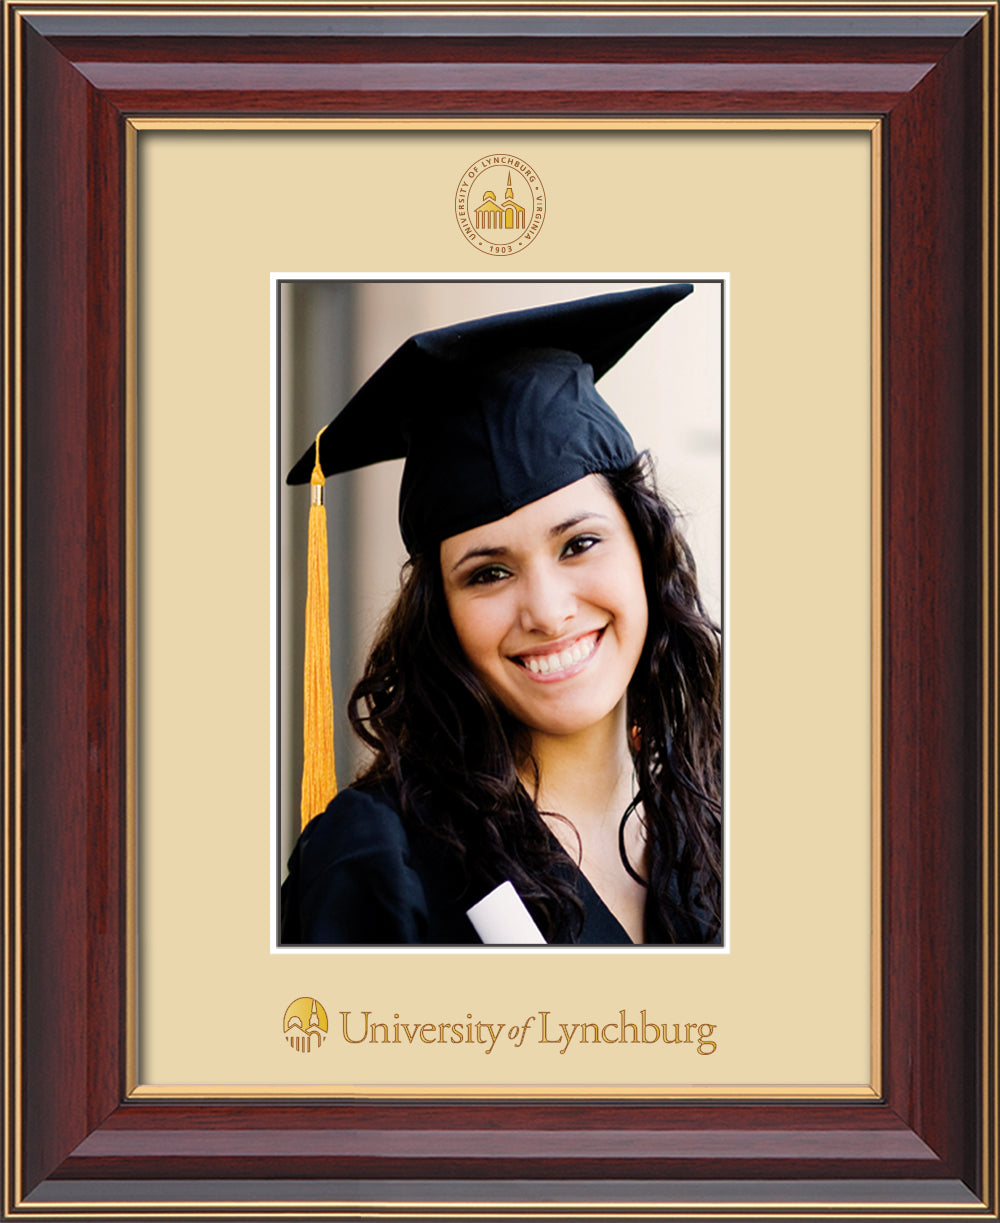 University of Lynchburg 5x7 Photo Frame